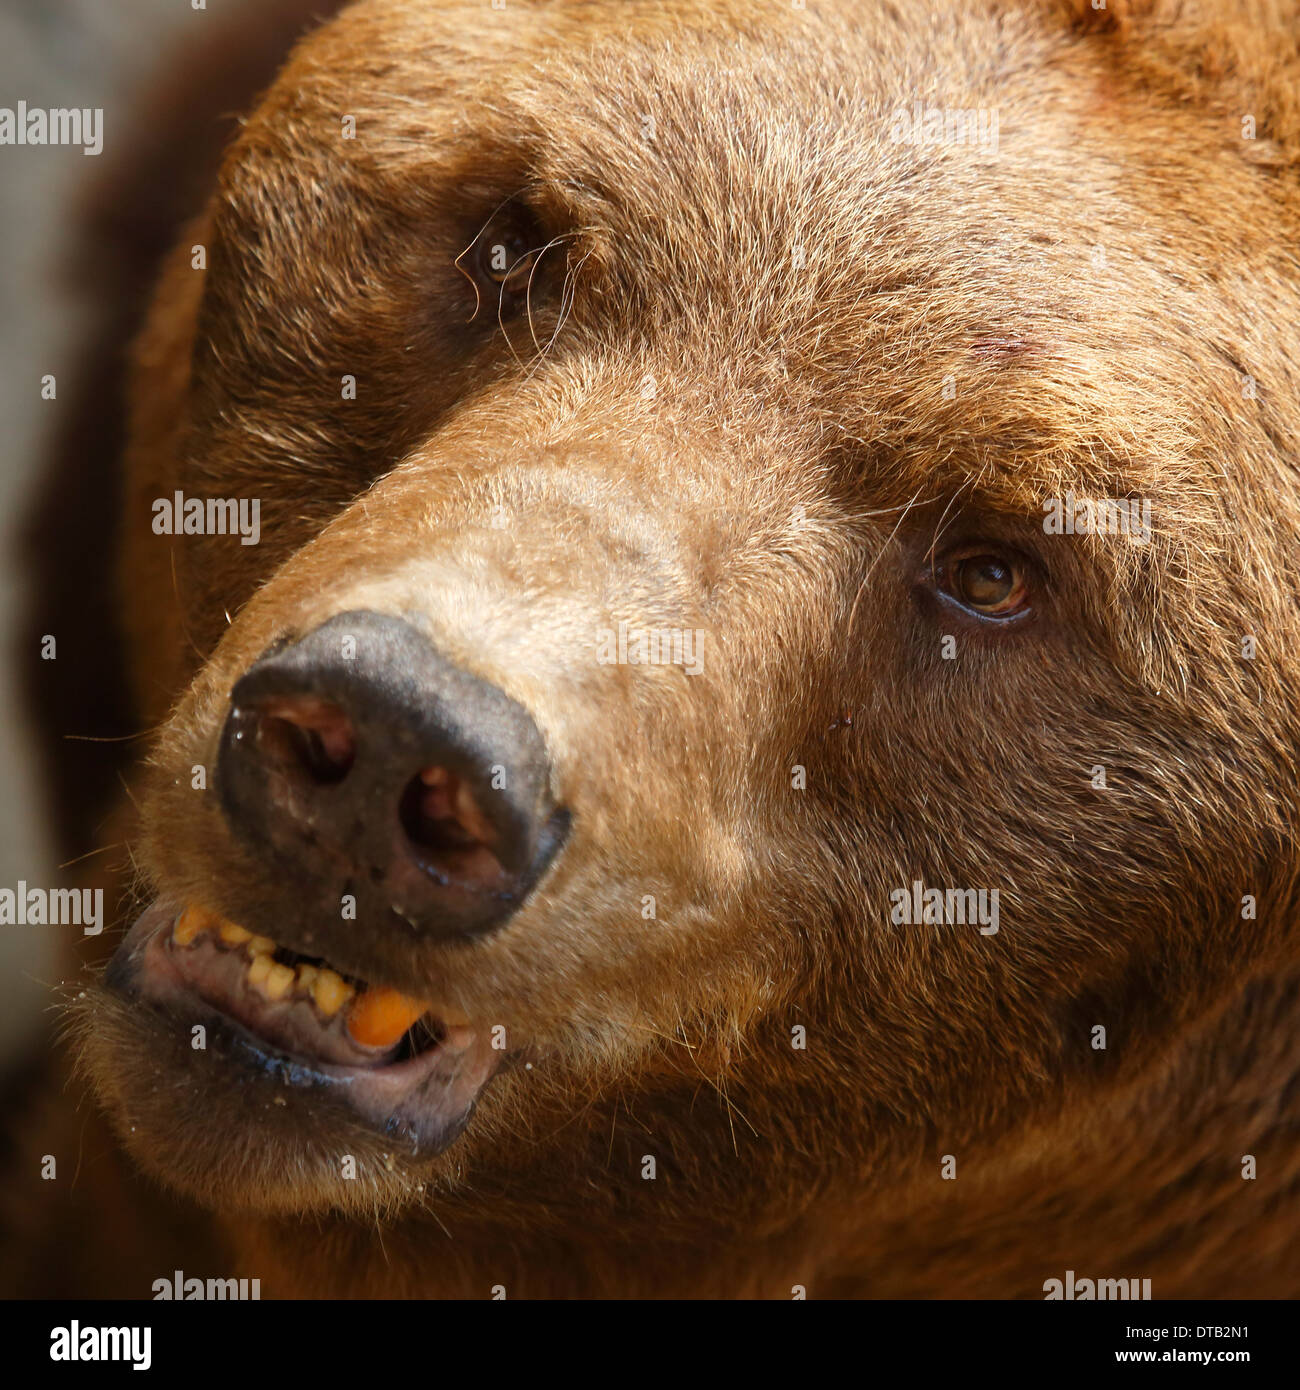 Closeup view of a scary bear face Stock Photo, Royalty Free Image ...